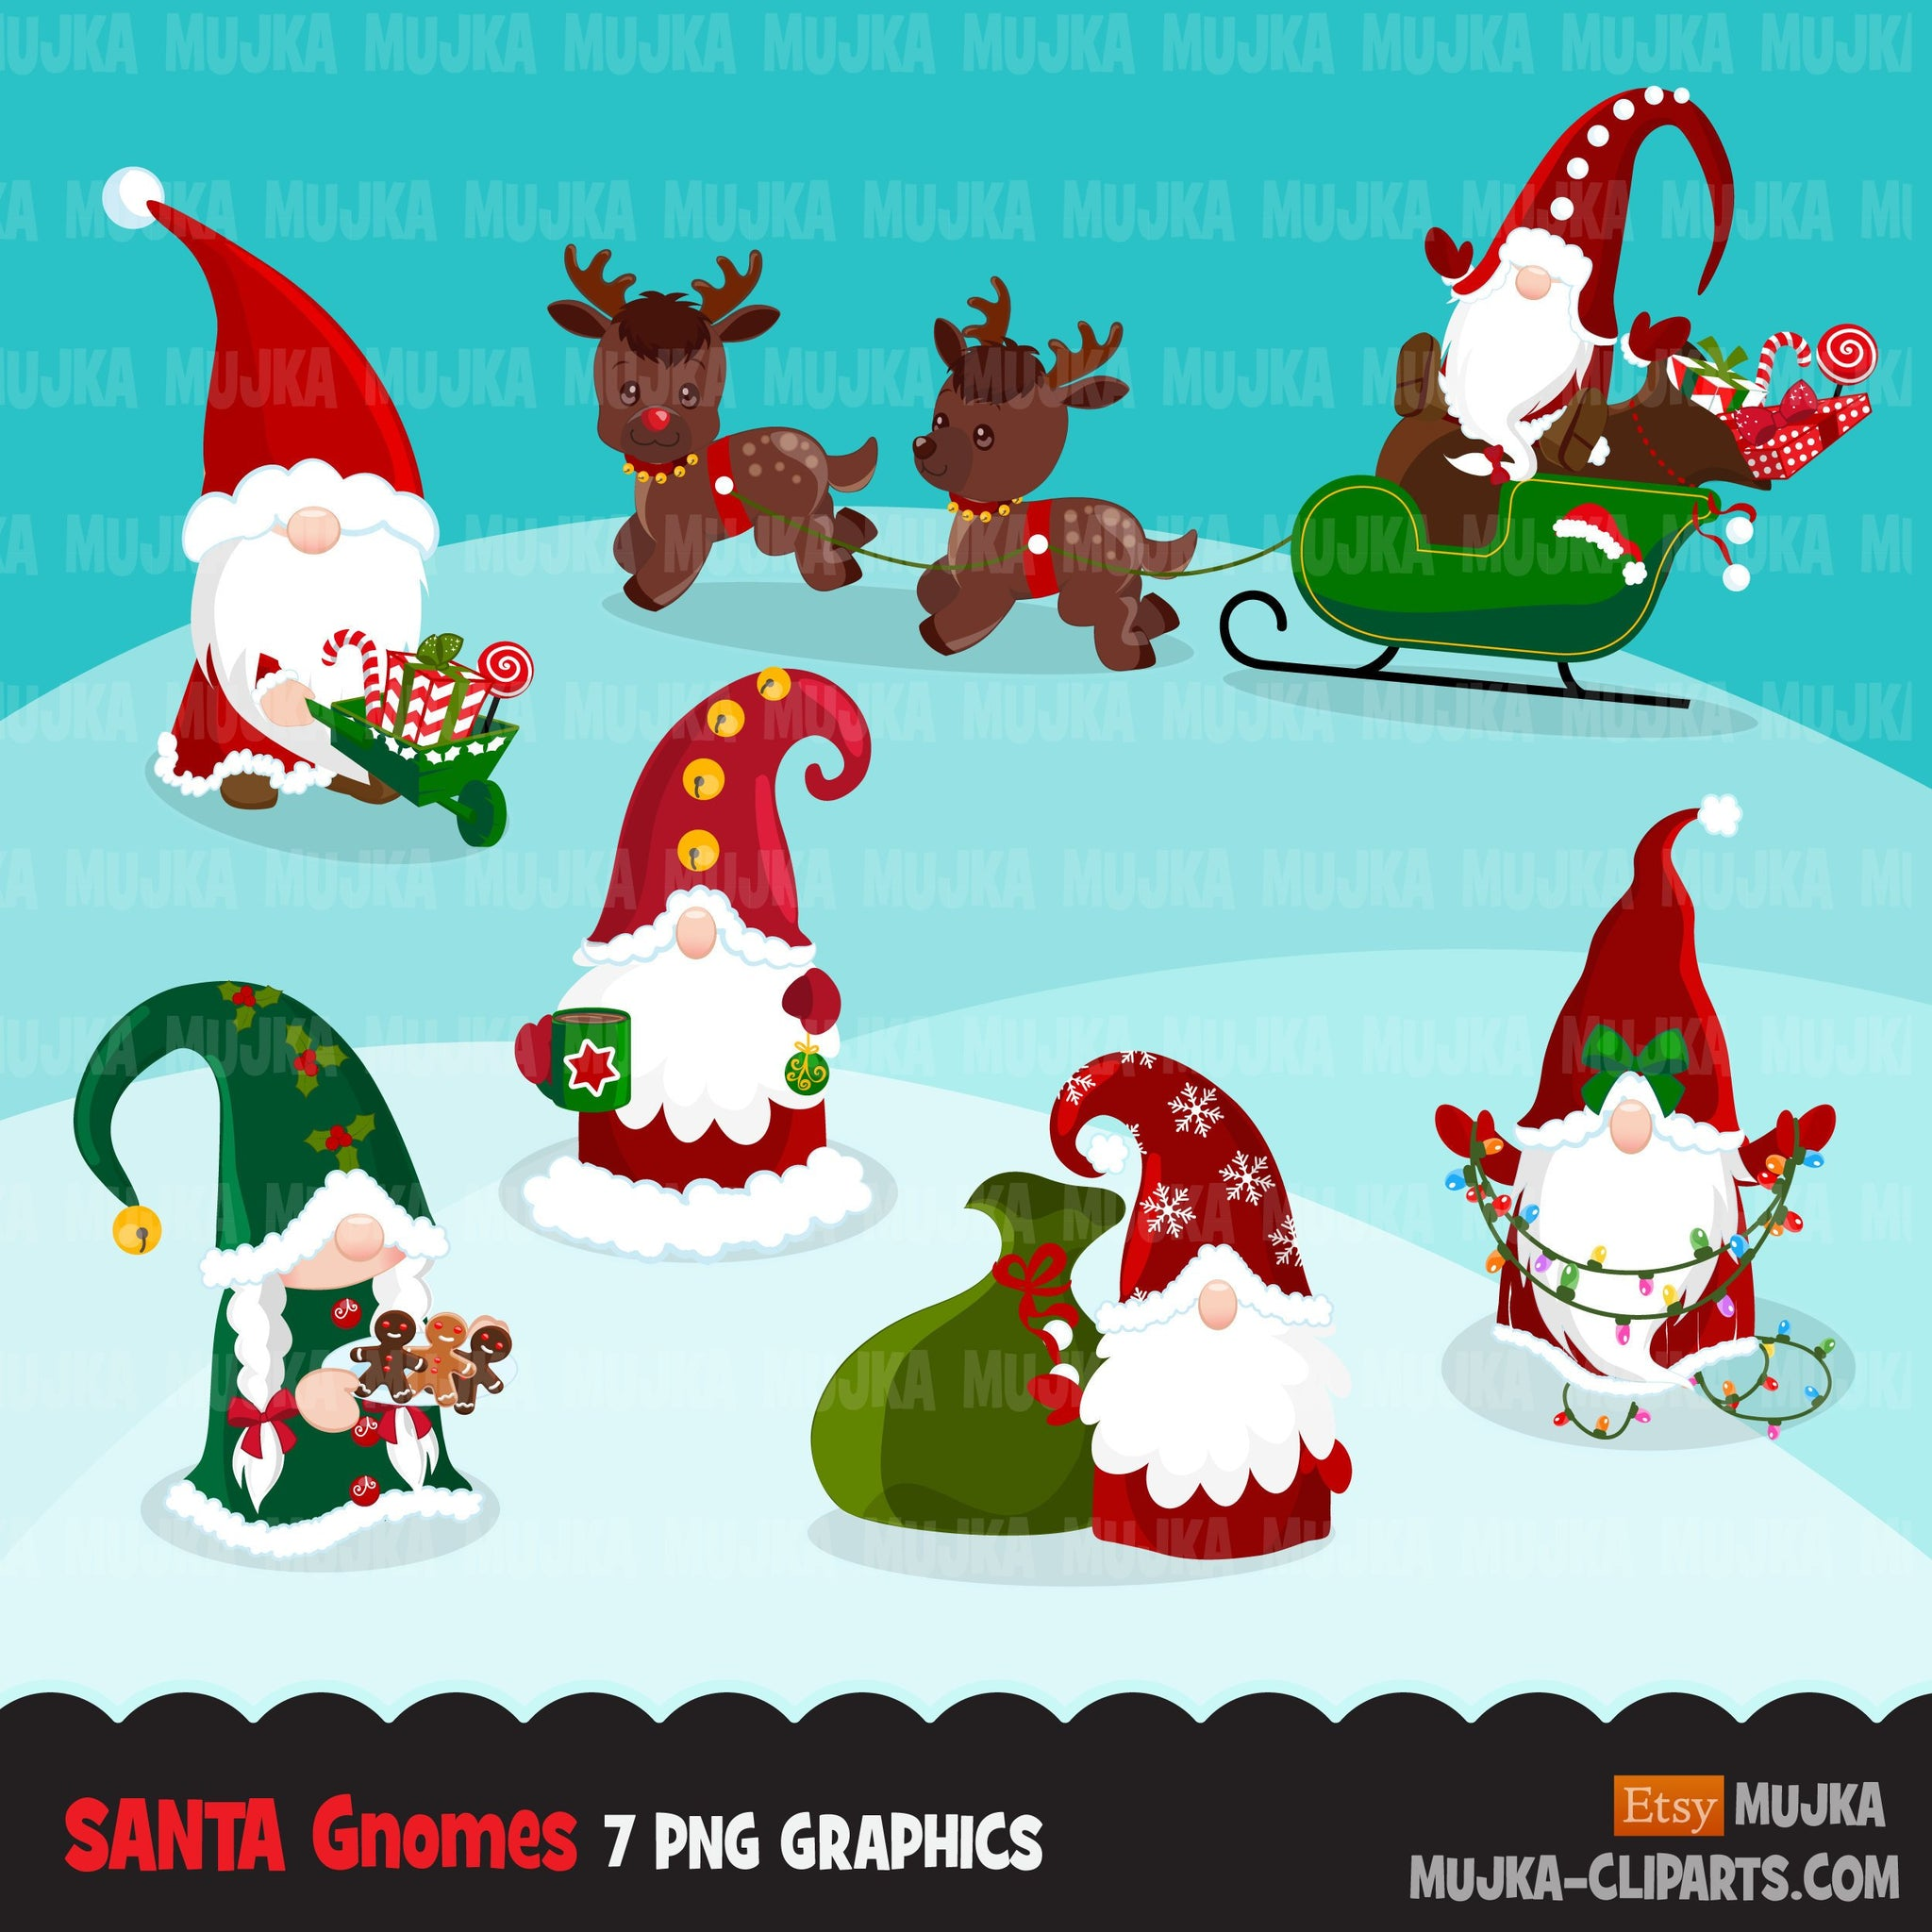 Christmas Santa gnomes Clipart, Scandinavian Gnome graphics, illustration, Holiday, noel, cute characters clip art